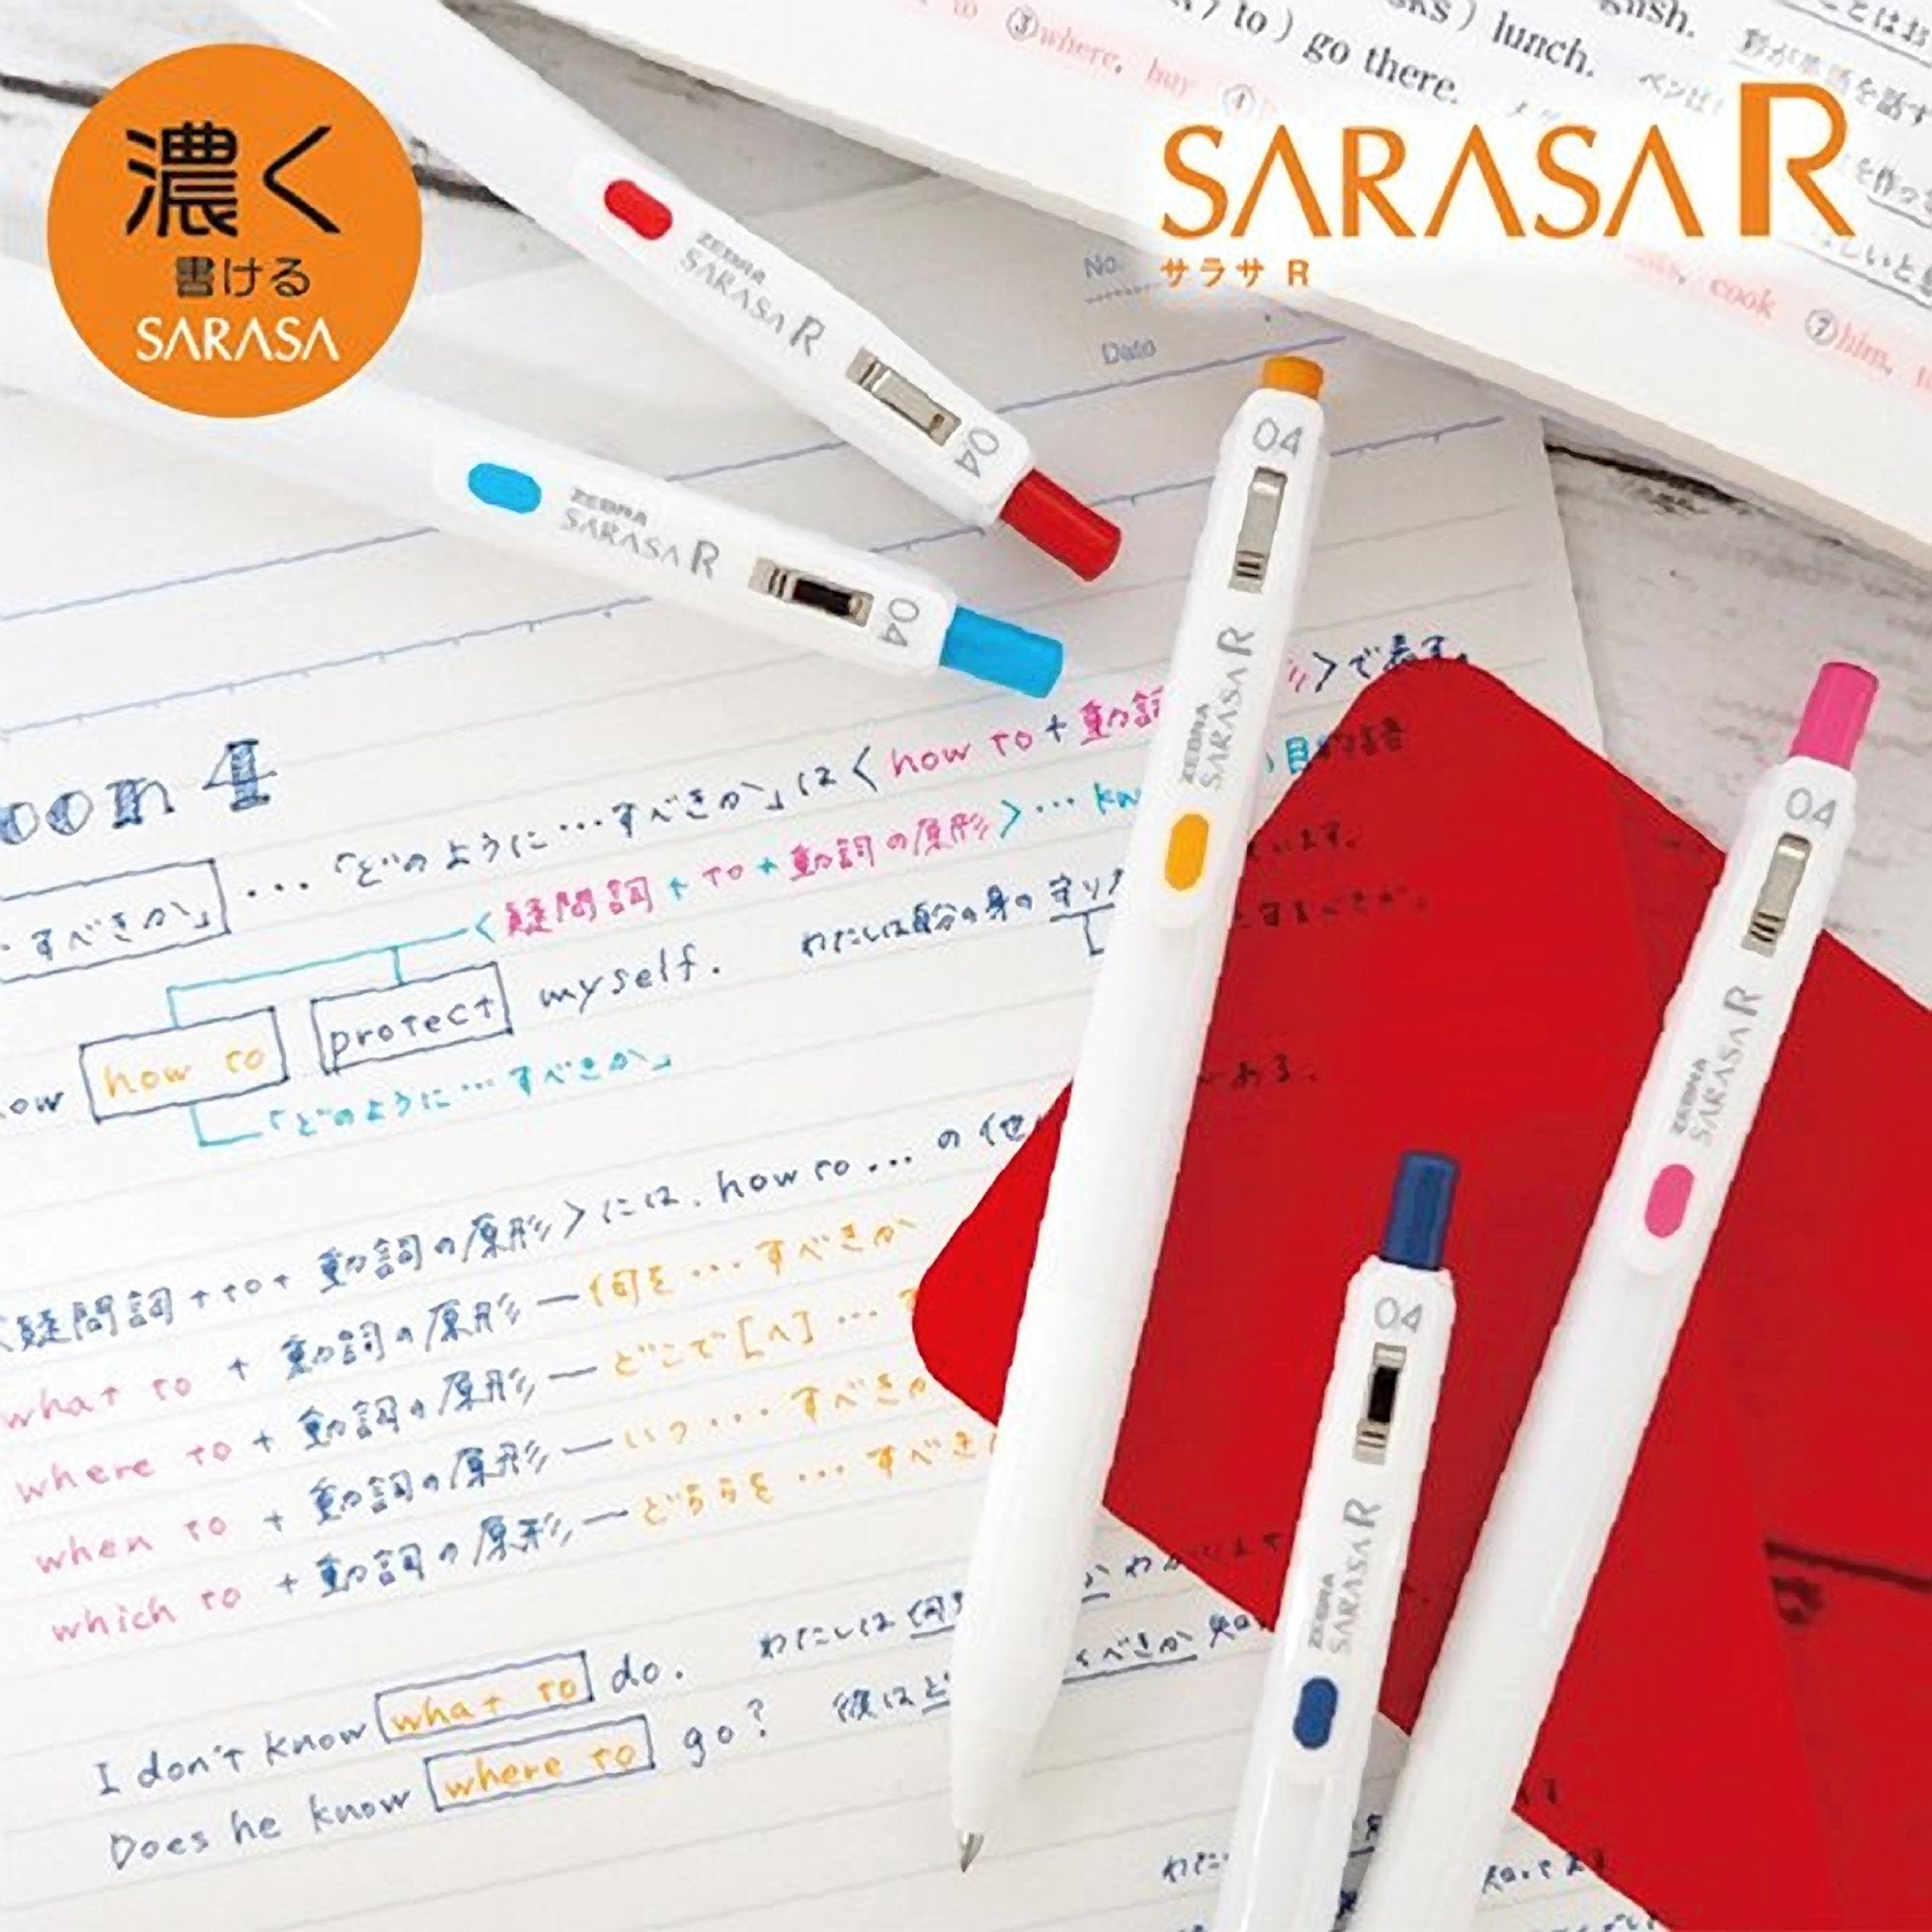 "Zebra Sarasa ""R"" Rich BLUE 0.4mm Push Clip Gel Pen Super Saturated Ink 